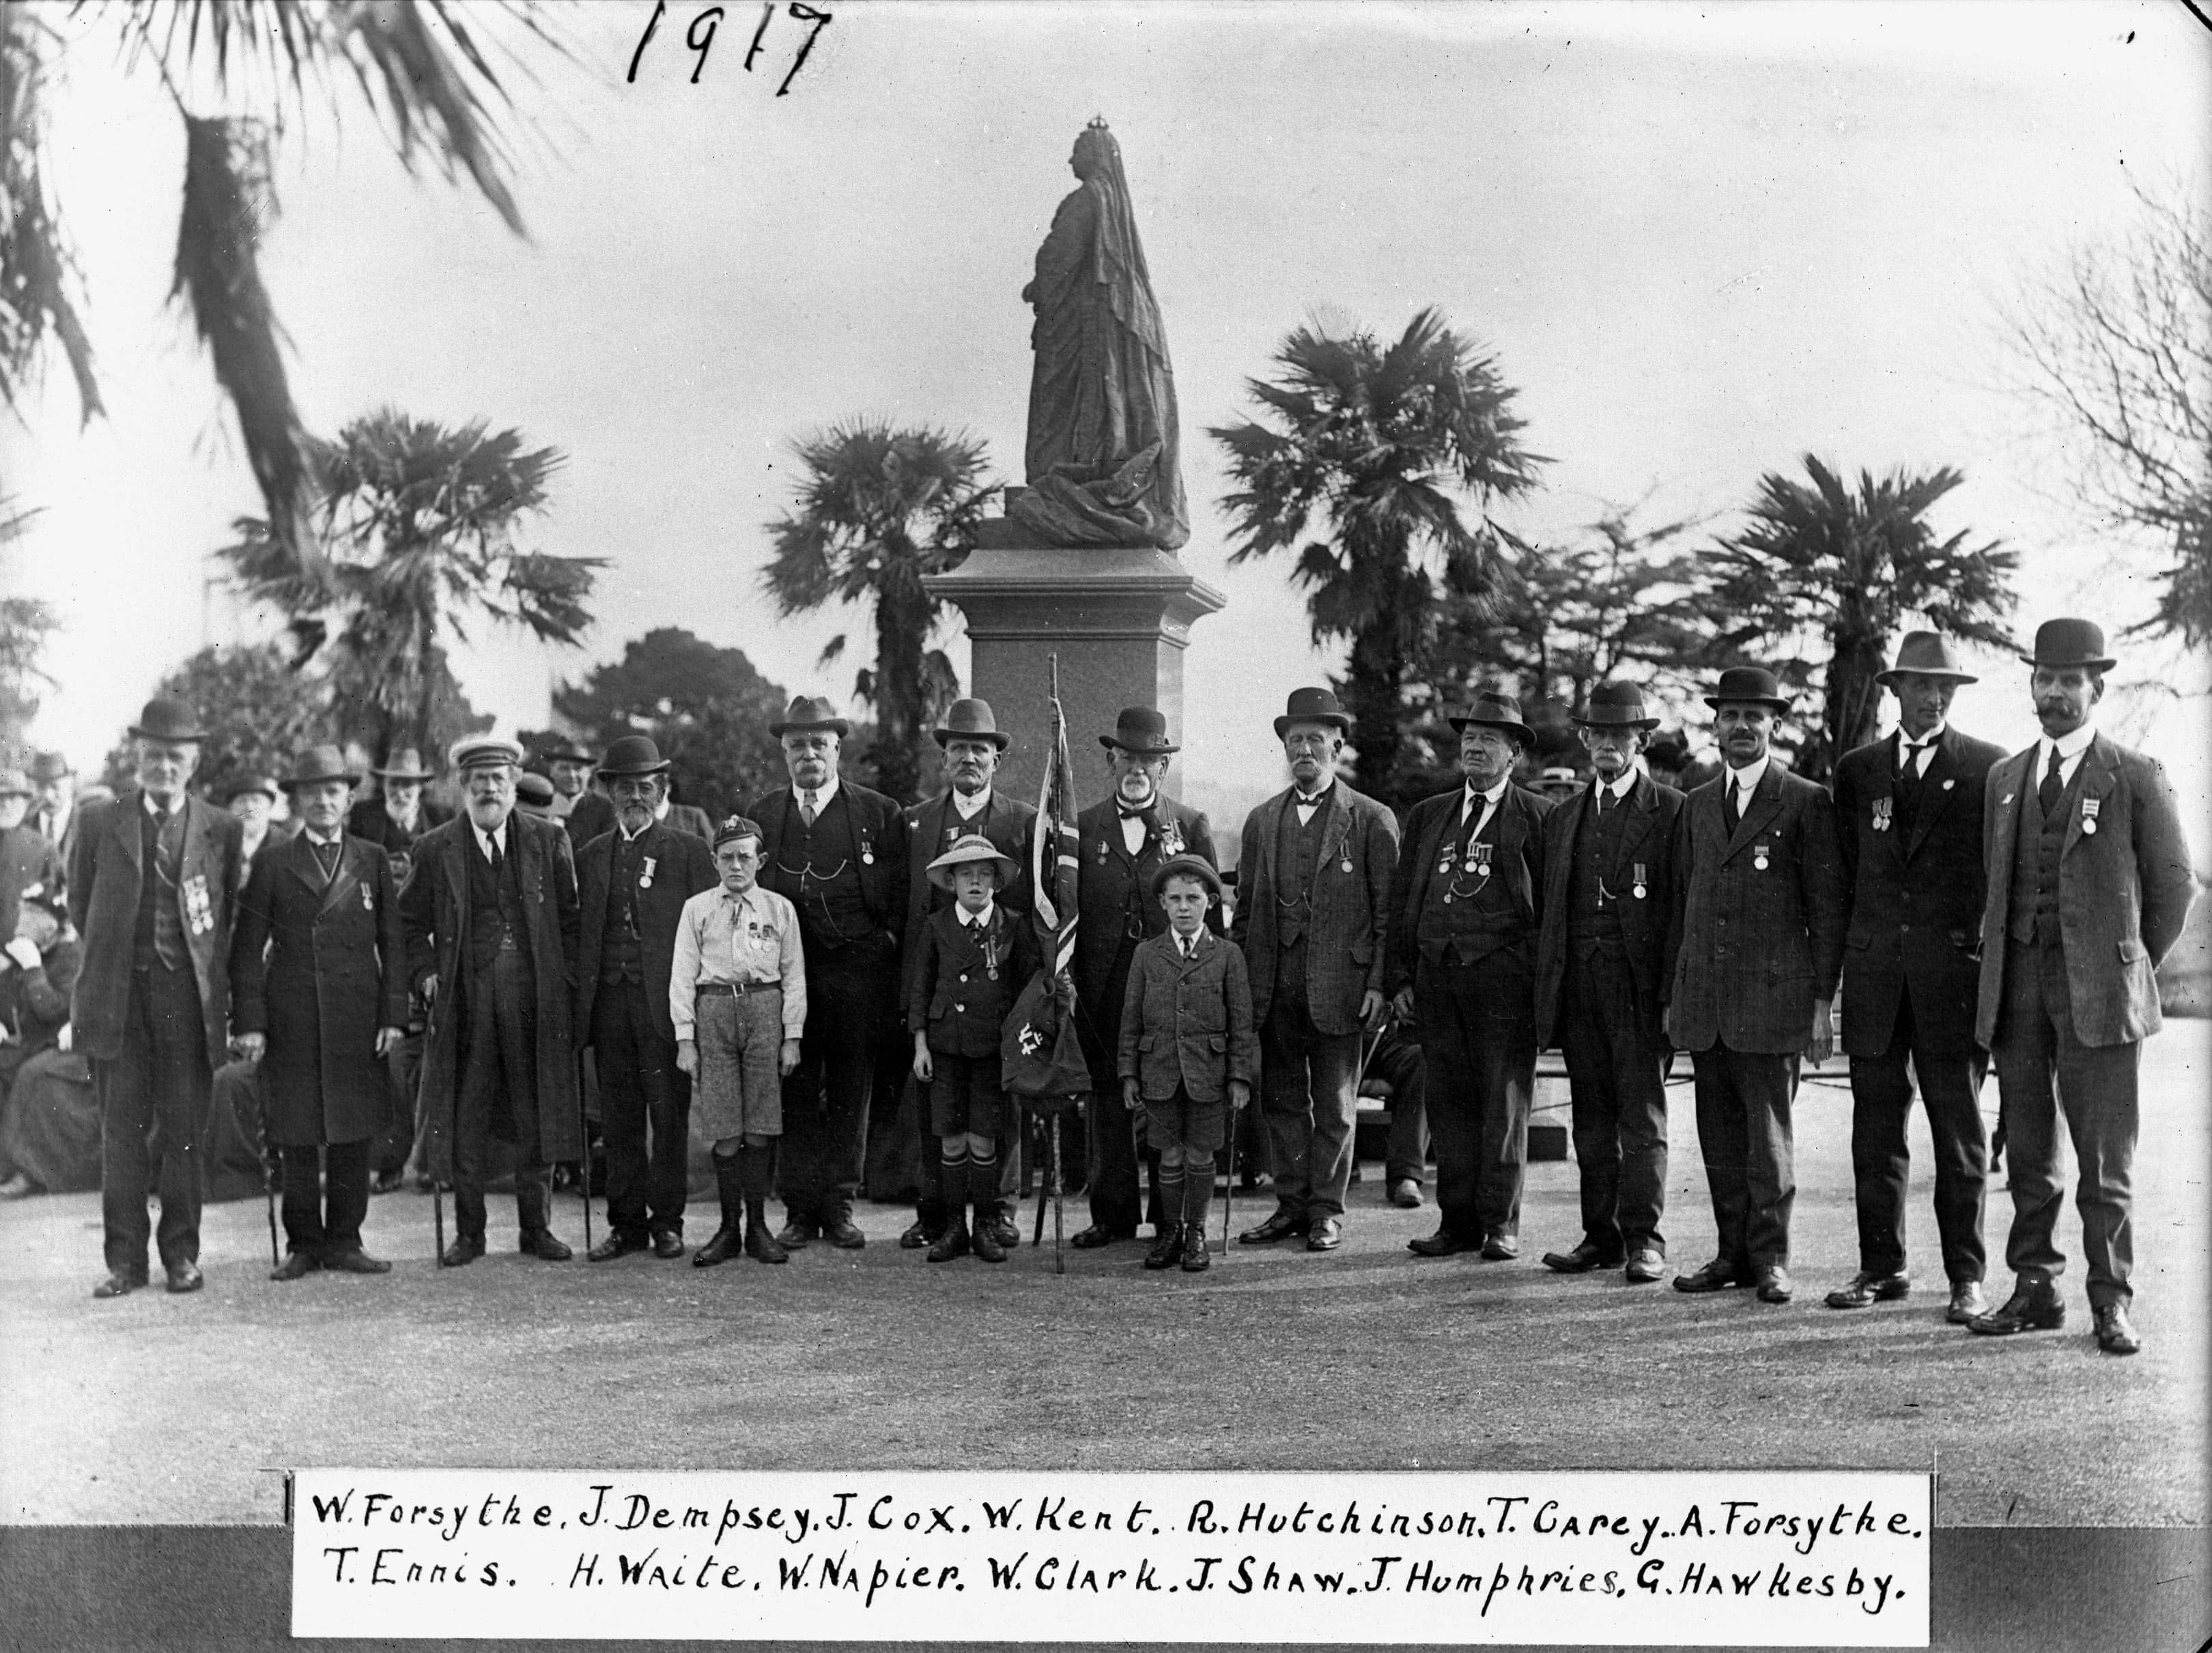 Veterans of the 18th Royal Irish Regiment, Albert Park Frank J.Denton